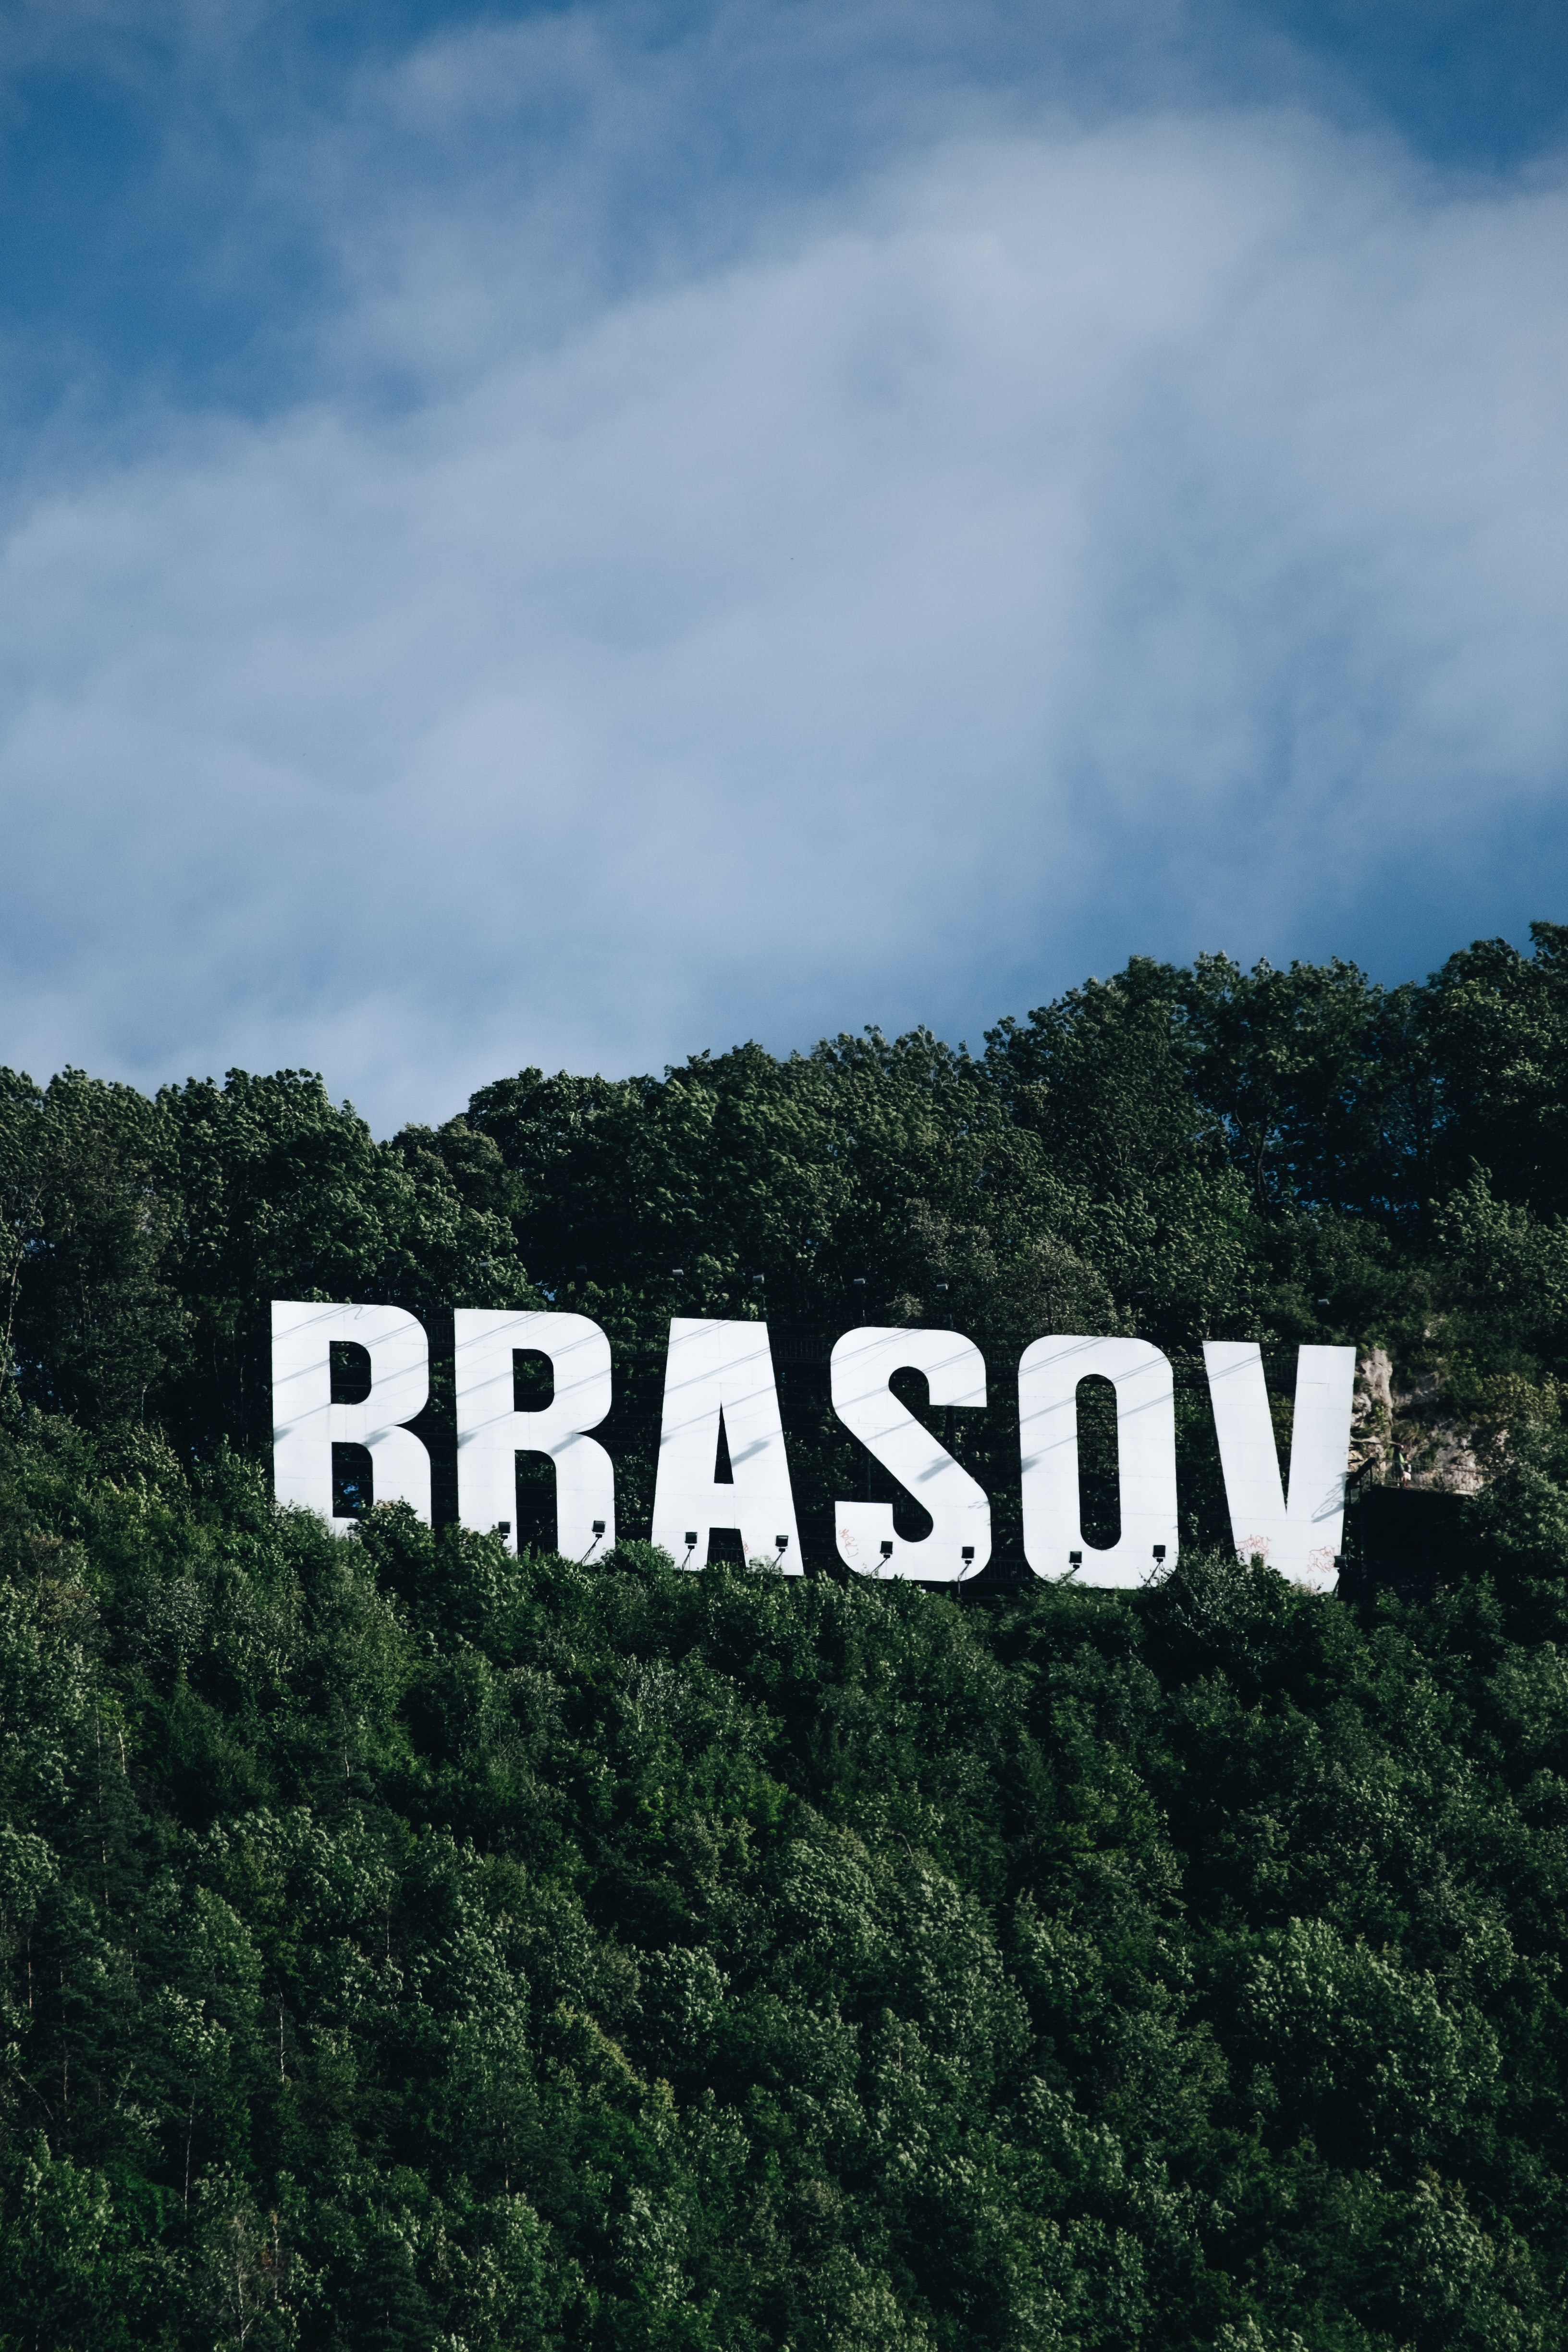 Brasov signage surrounded by trees